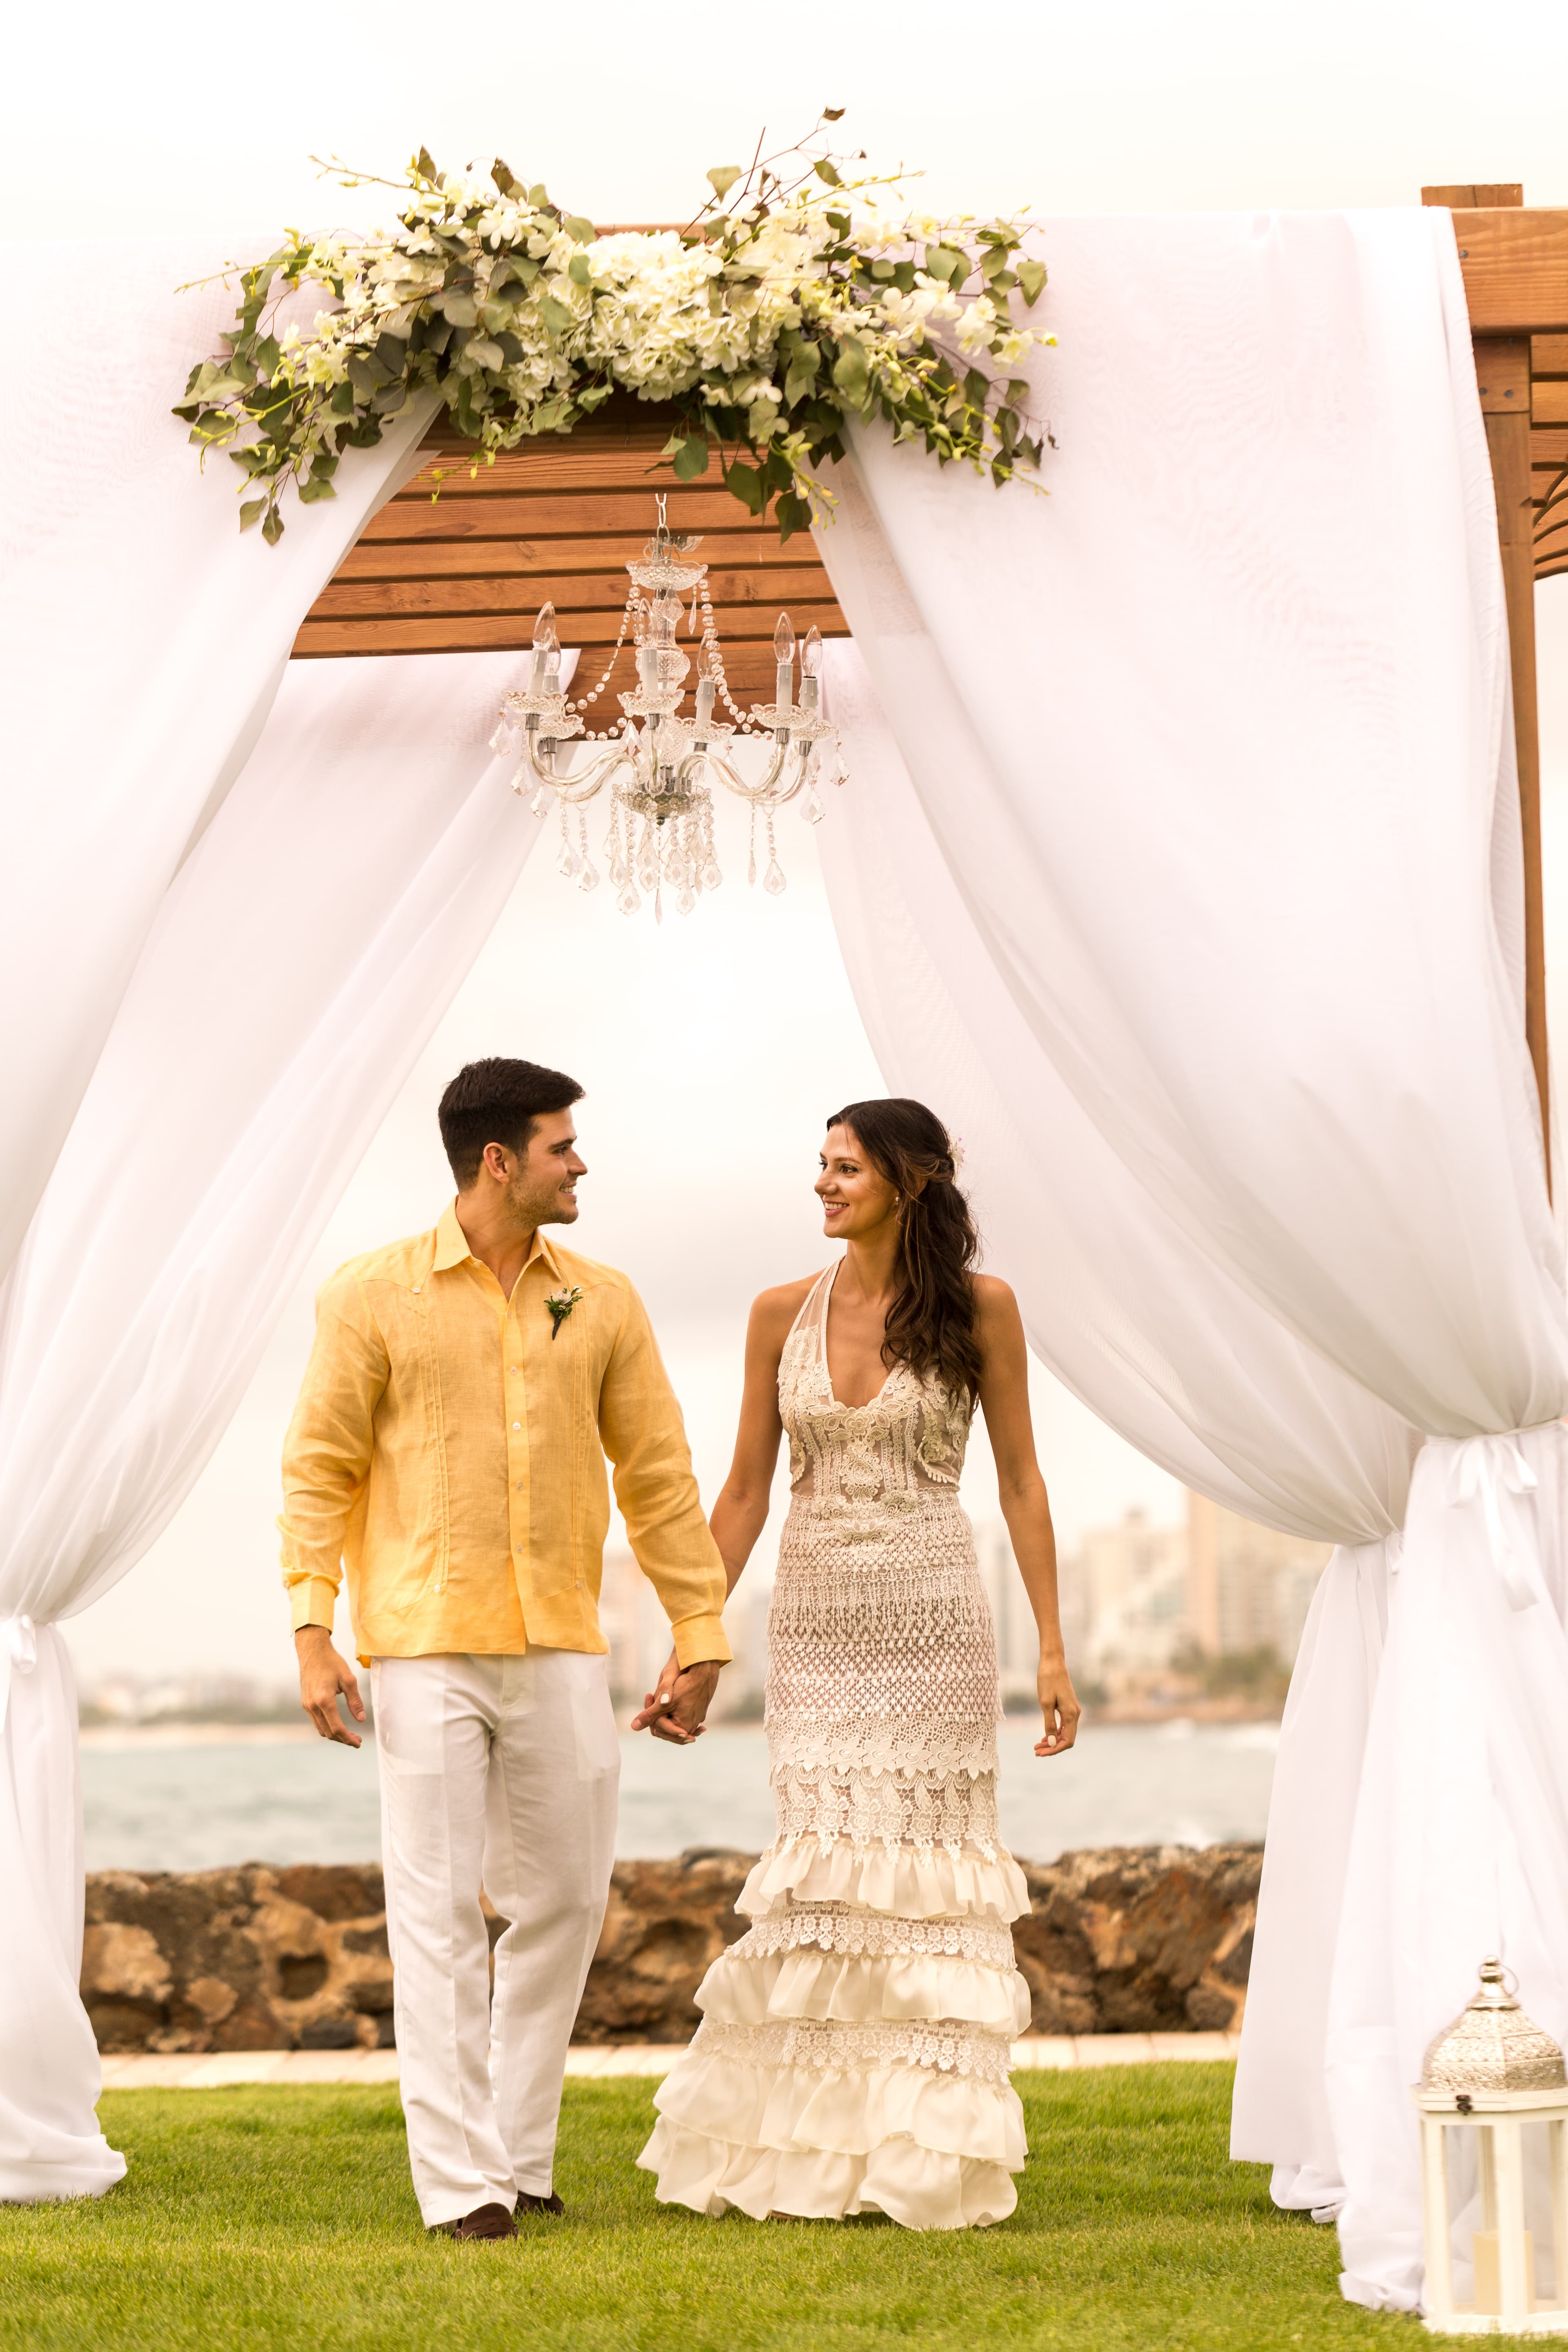 Dating and marriage traditions in puerto rico